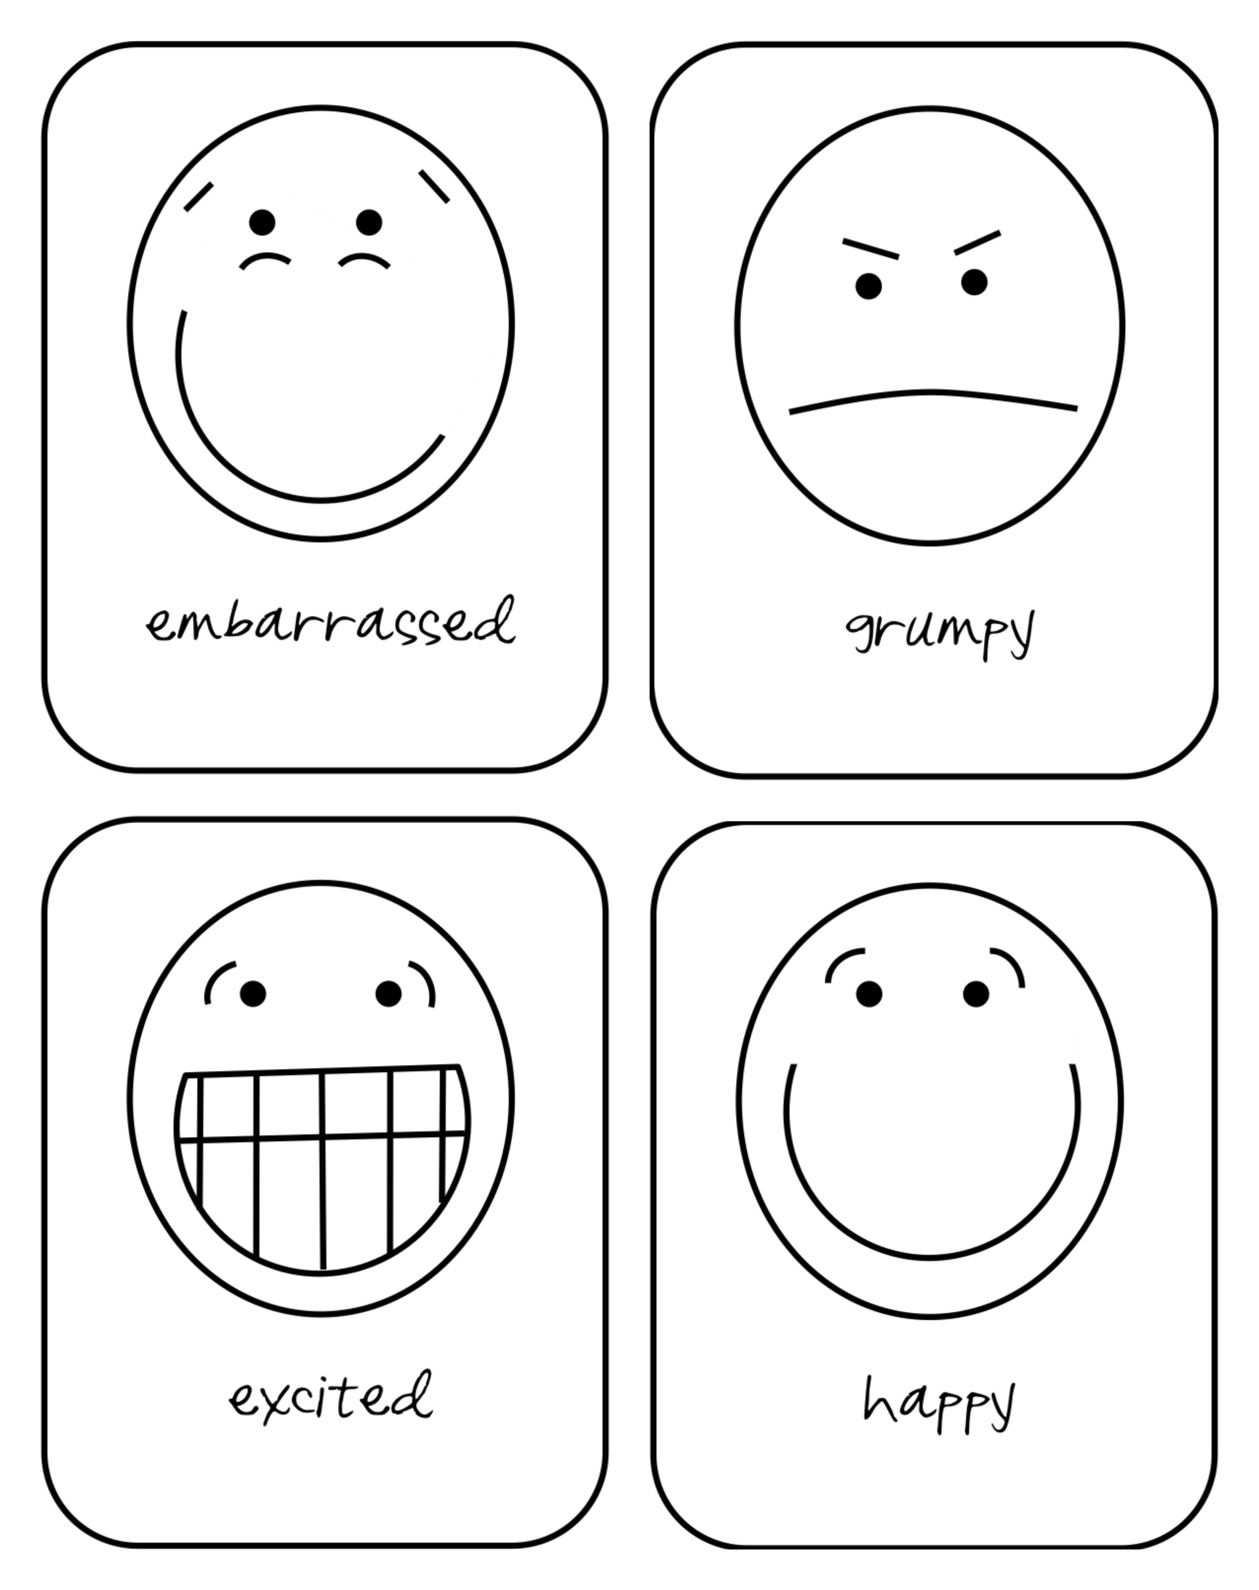 Free printable emotion flash cards for your toddler | HOPES AND ...